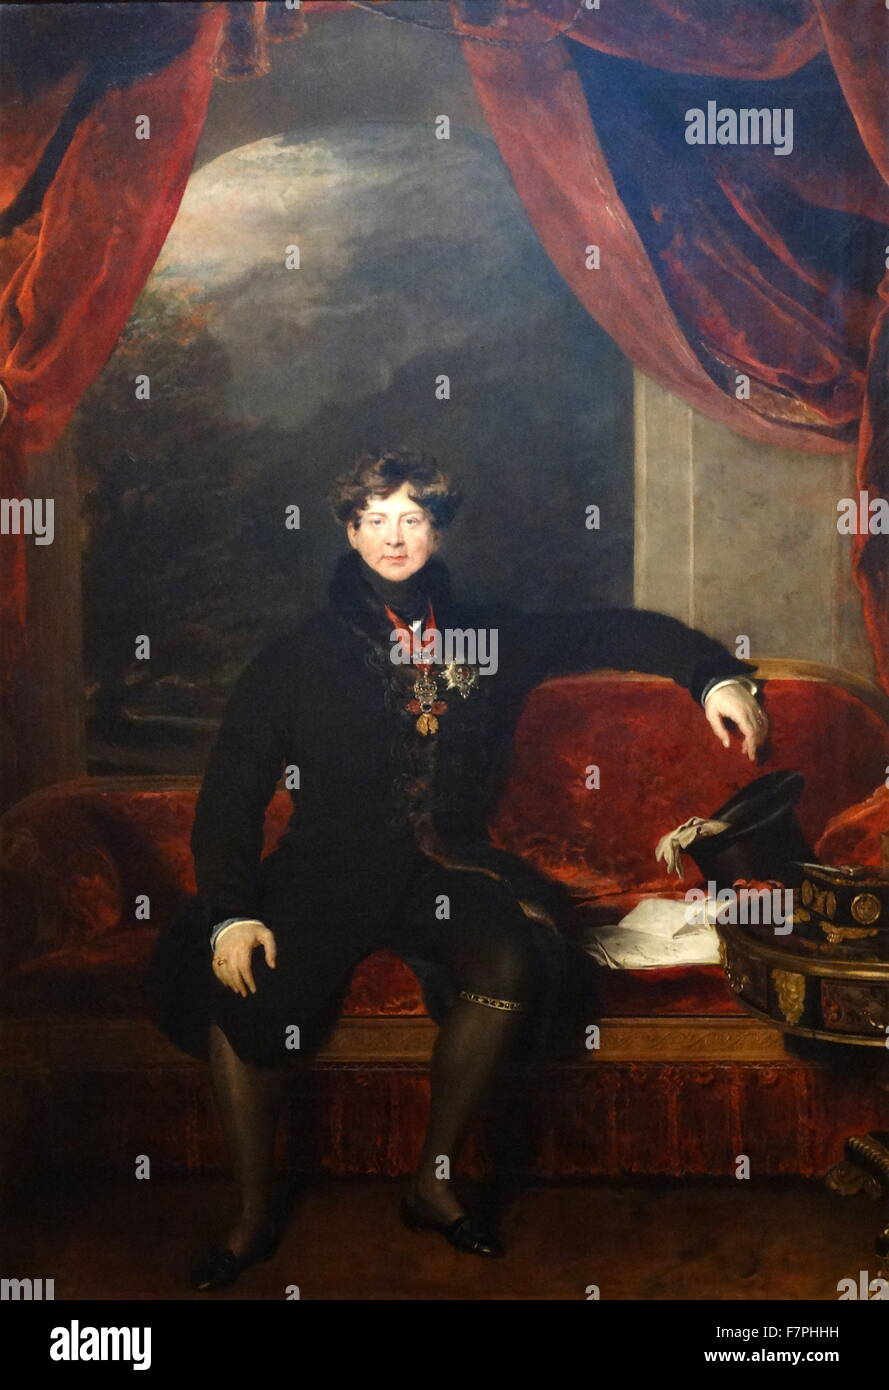 Portrait of King George IV by Thomas Lawrence (1769-1830) English portrait painter and president of the Royal Academy. - Stock Image